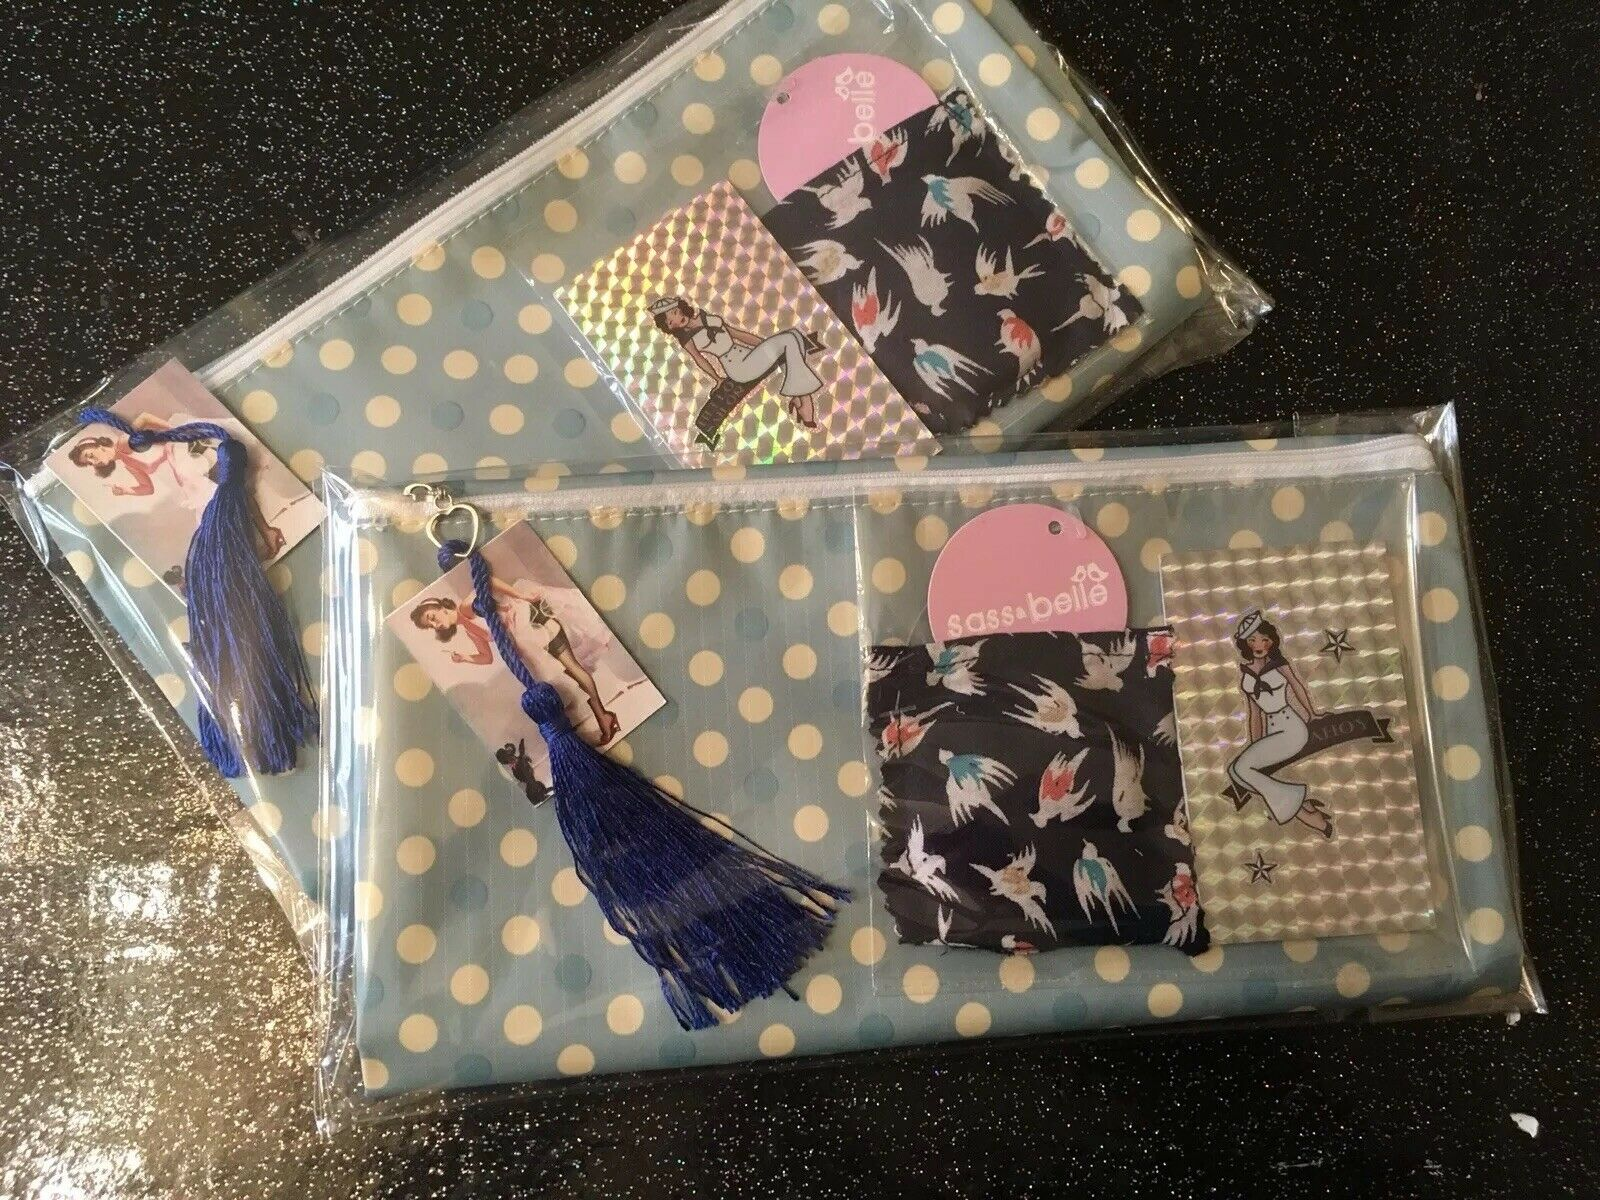 swallow compact mirror 50s pin up girl notebook +Toiletry Bag 3pc Rockabilly set